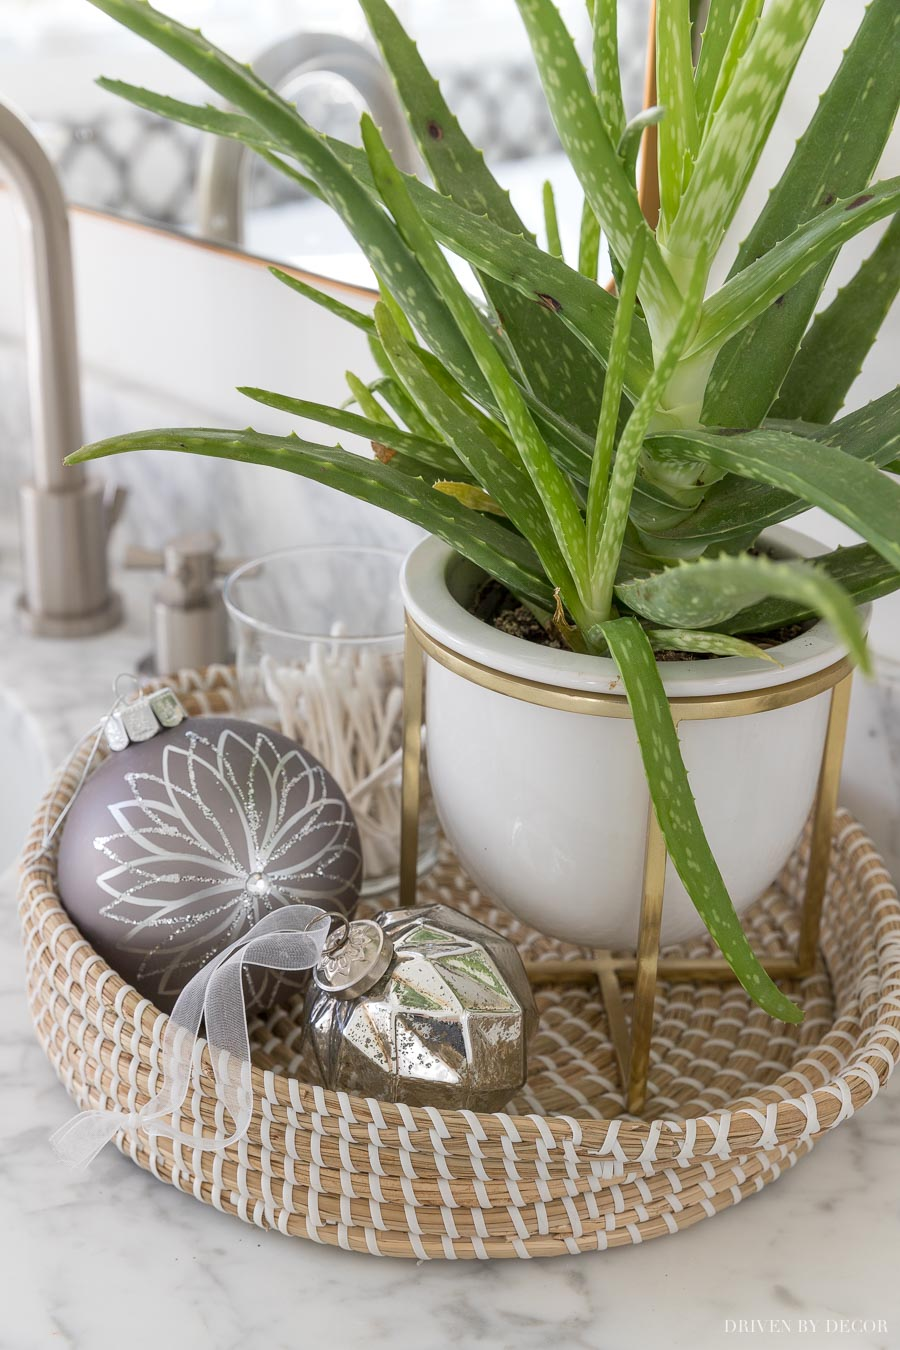 Love this seagrass basket in her bathroom - perfect for between the sinks!